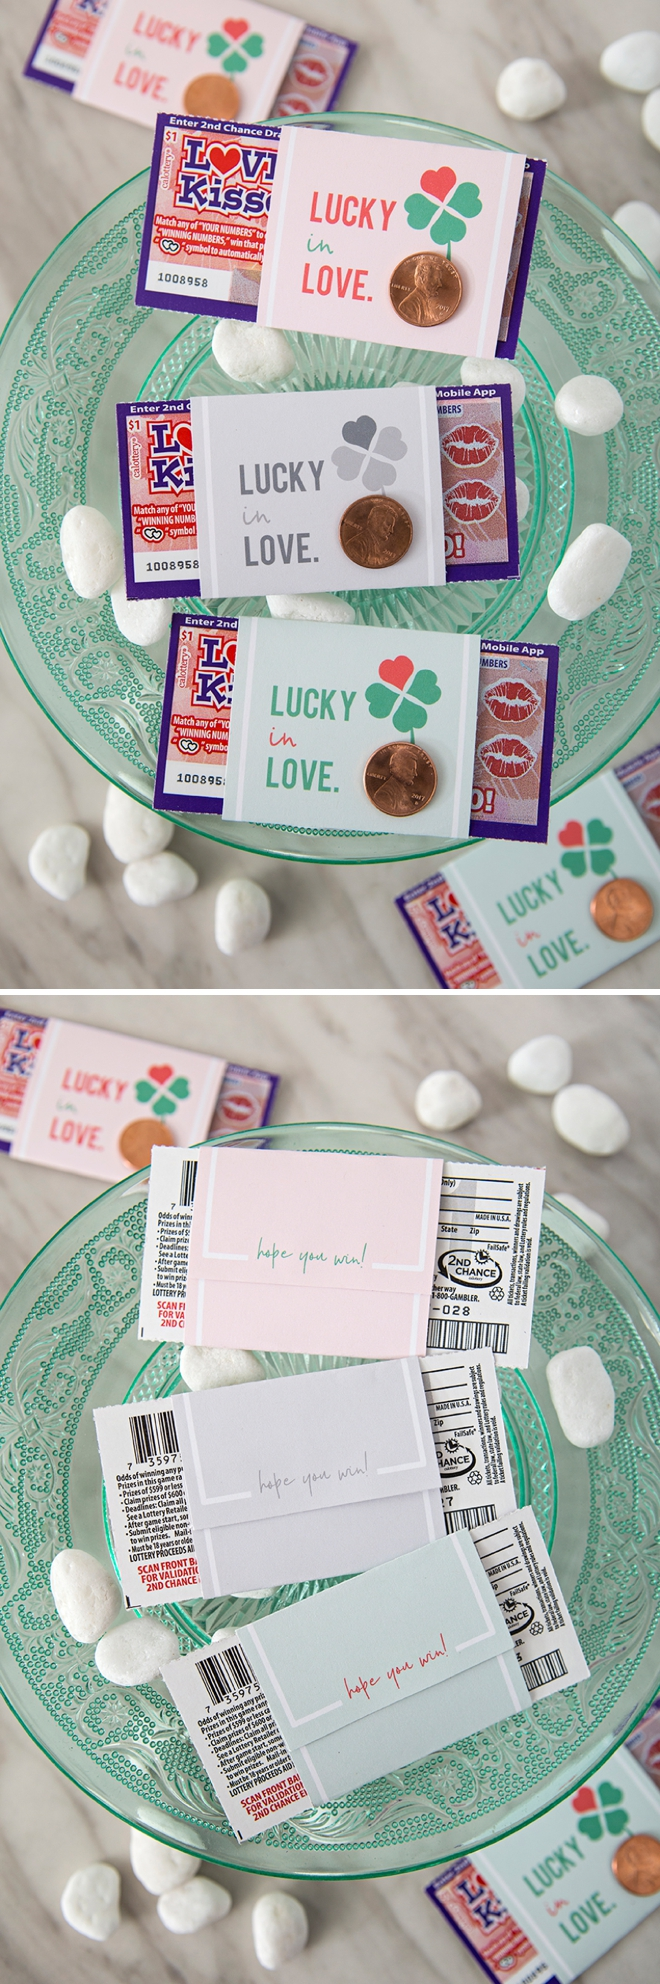 These DIY $1 scratcher wedding favors are SO cute!